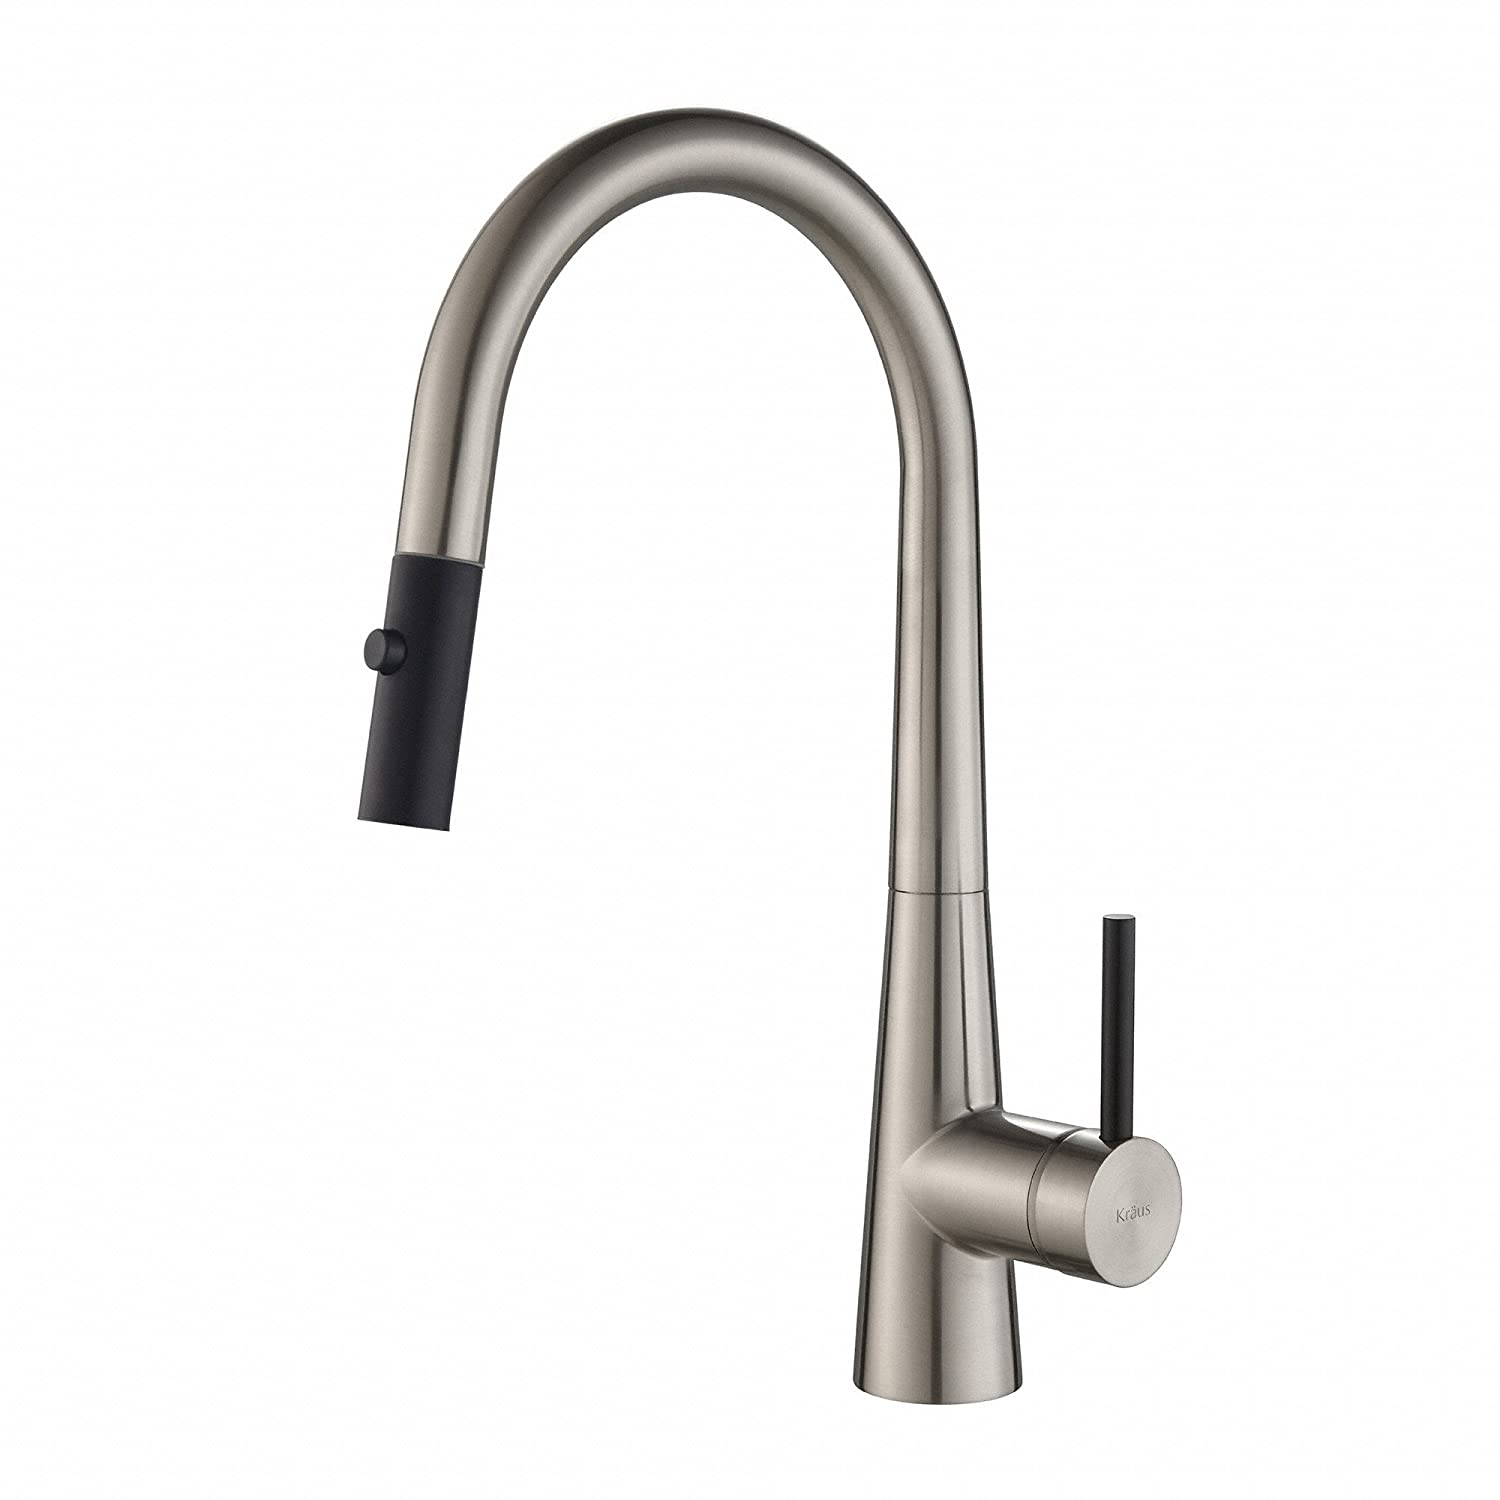 with faucets handle fadb stainless com walmart spray ip kitchen faucet ultra steel side